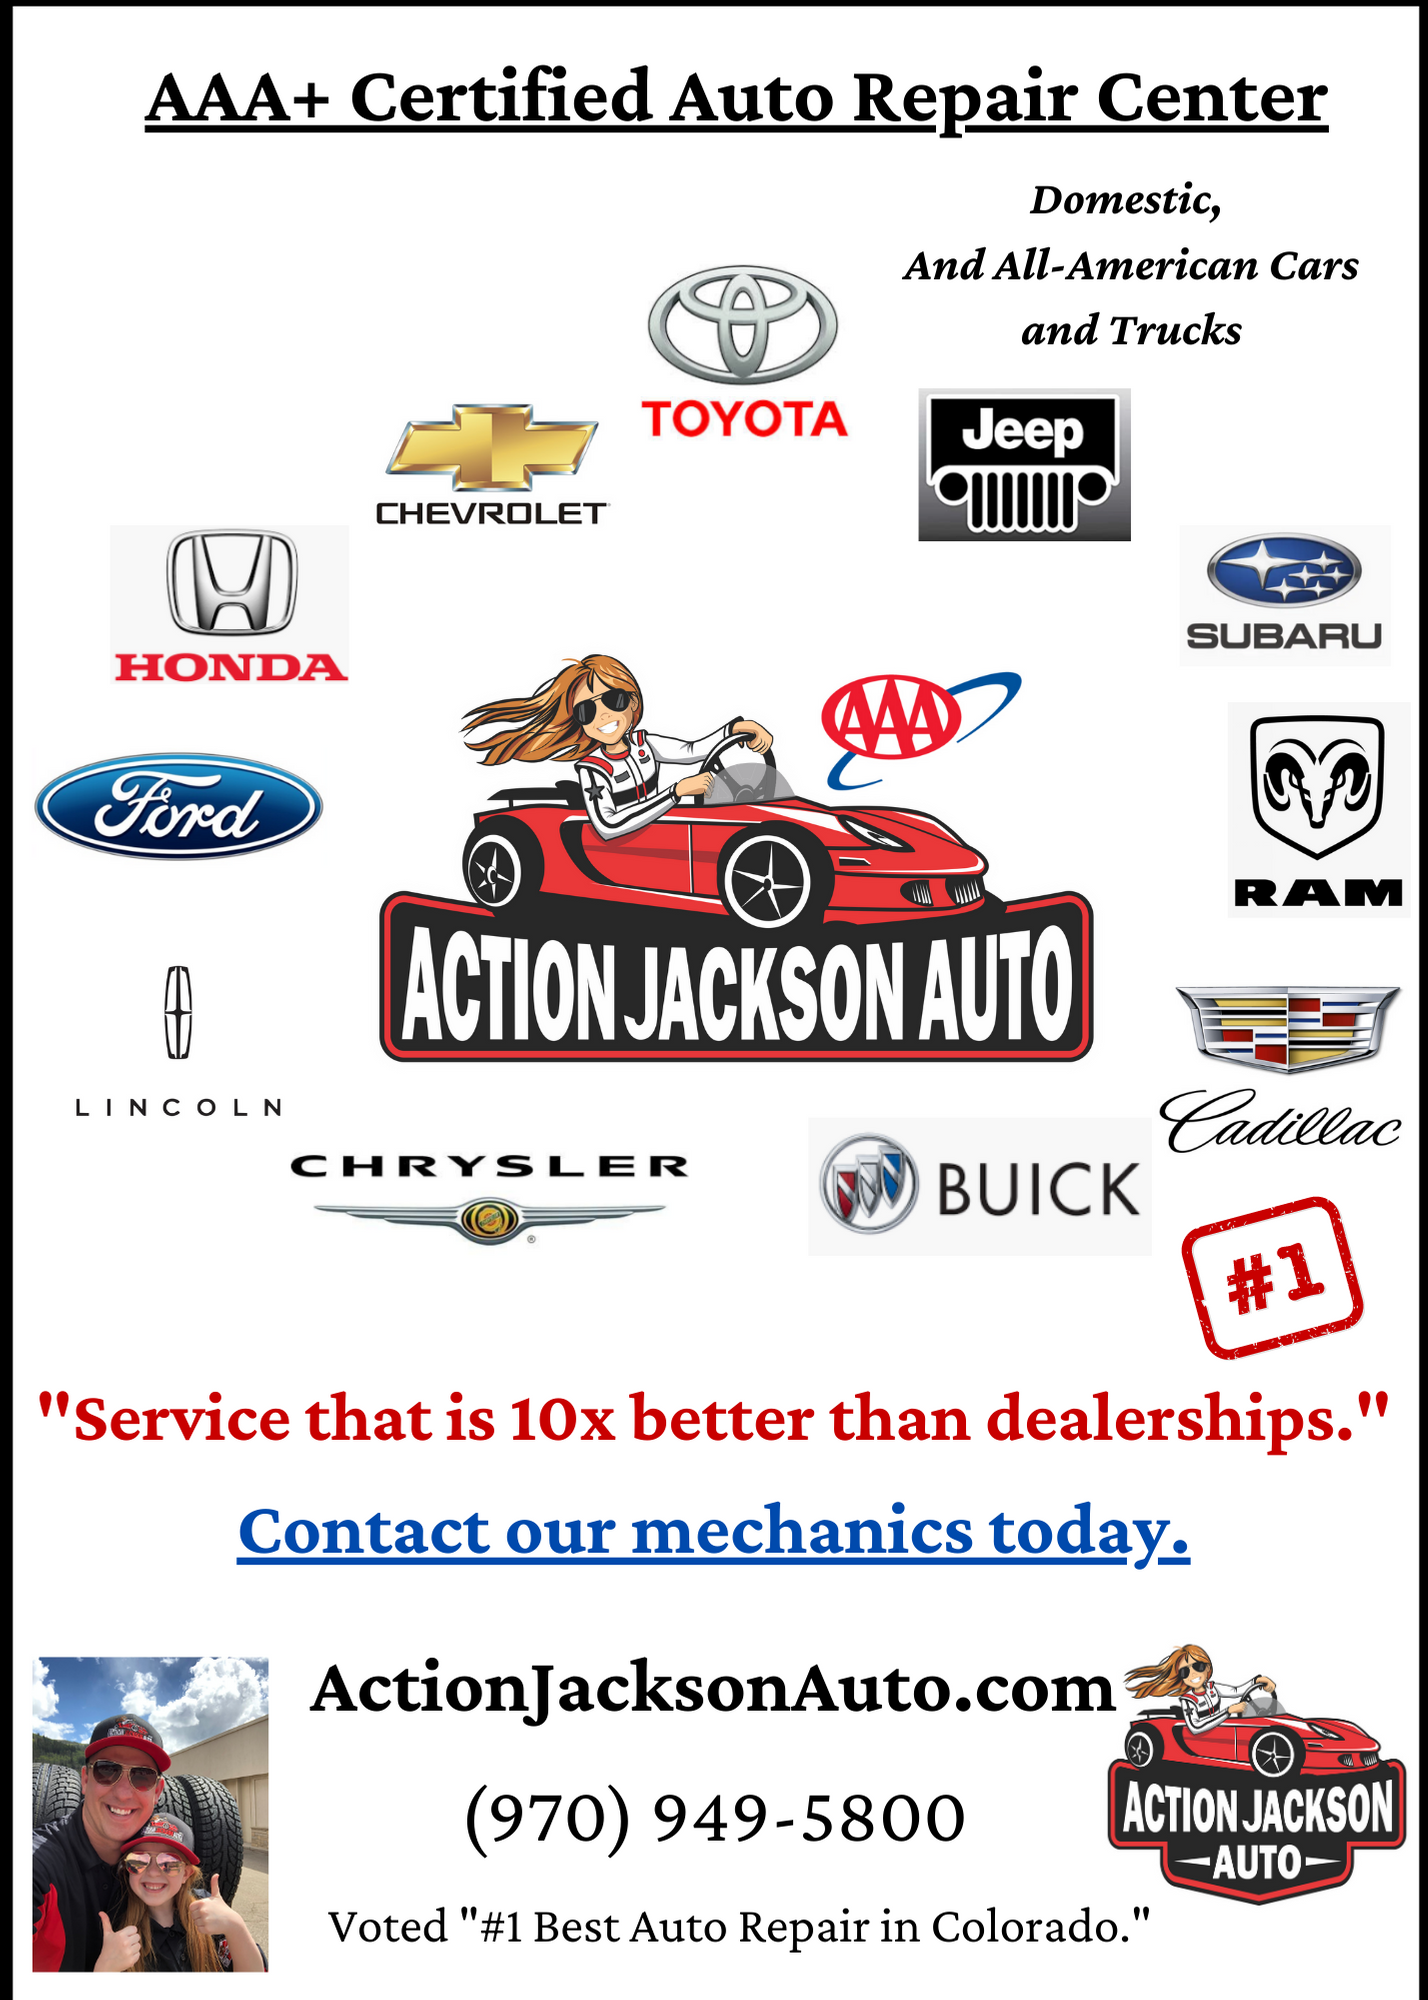 Your Local Auto Repair 1 Voted Experts Auto Repair Near You Action Jackson Auto